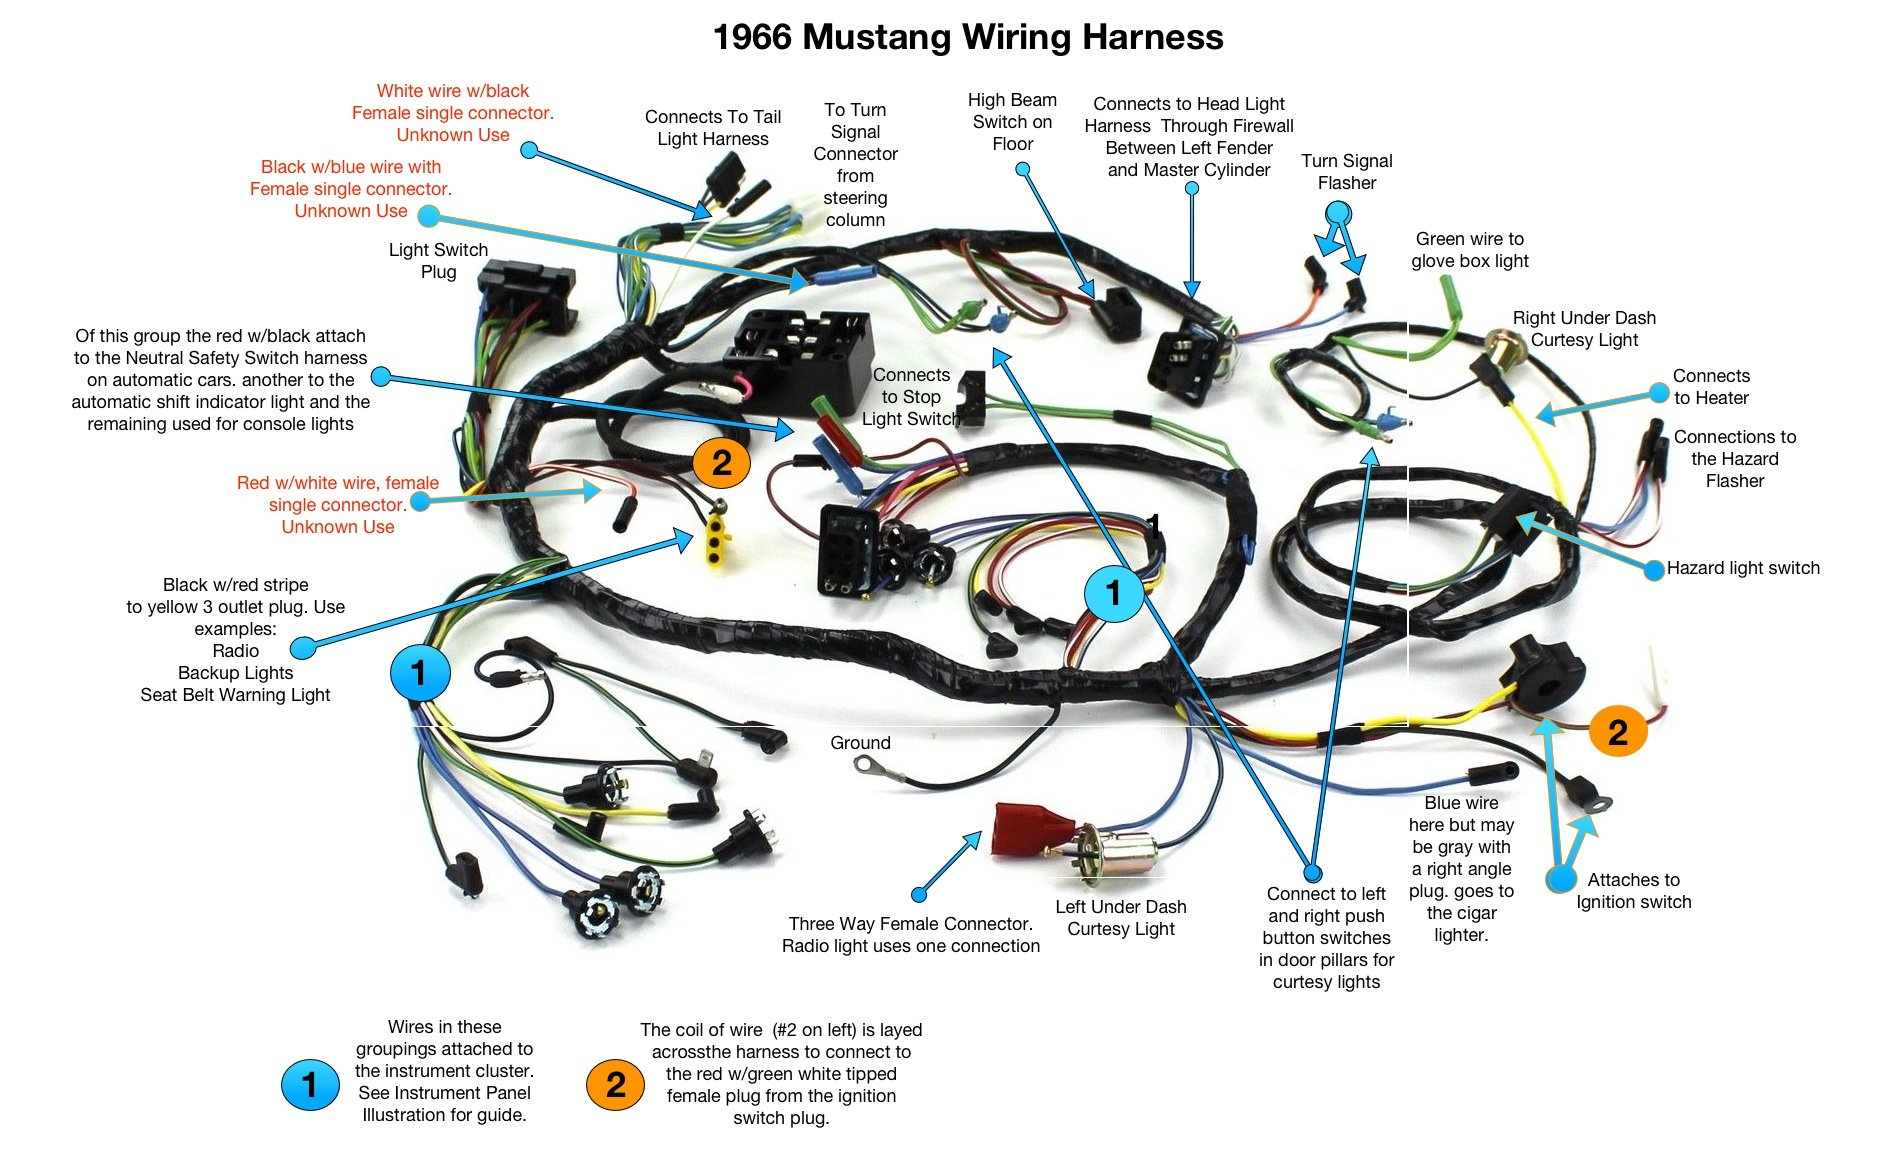 507585d1458686767 66 wiring harness diagram 66 mustang wiring harness 1966 mustang wiring harness on 1966 download wirning diagrams mustang wire harness at bayanpartner.co